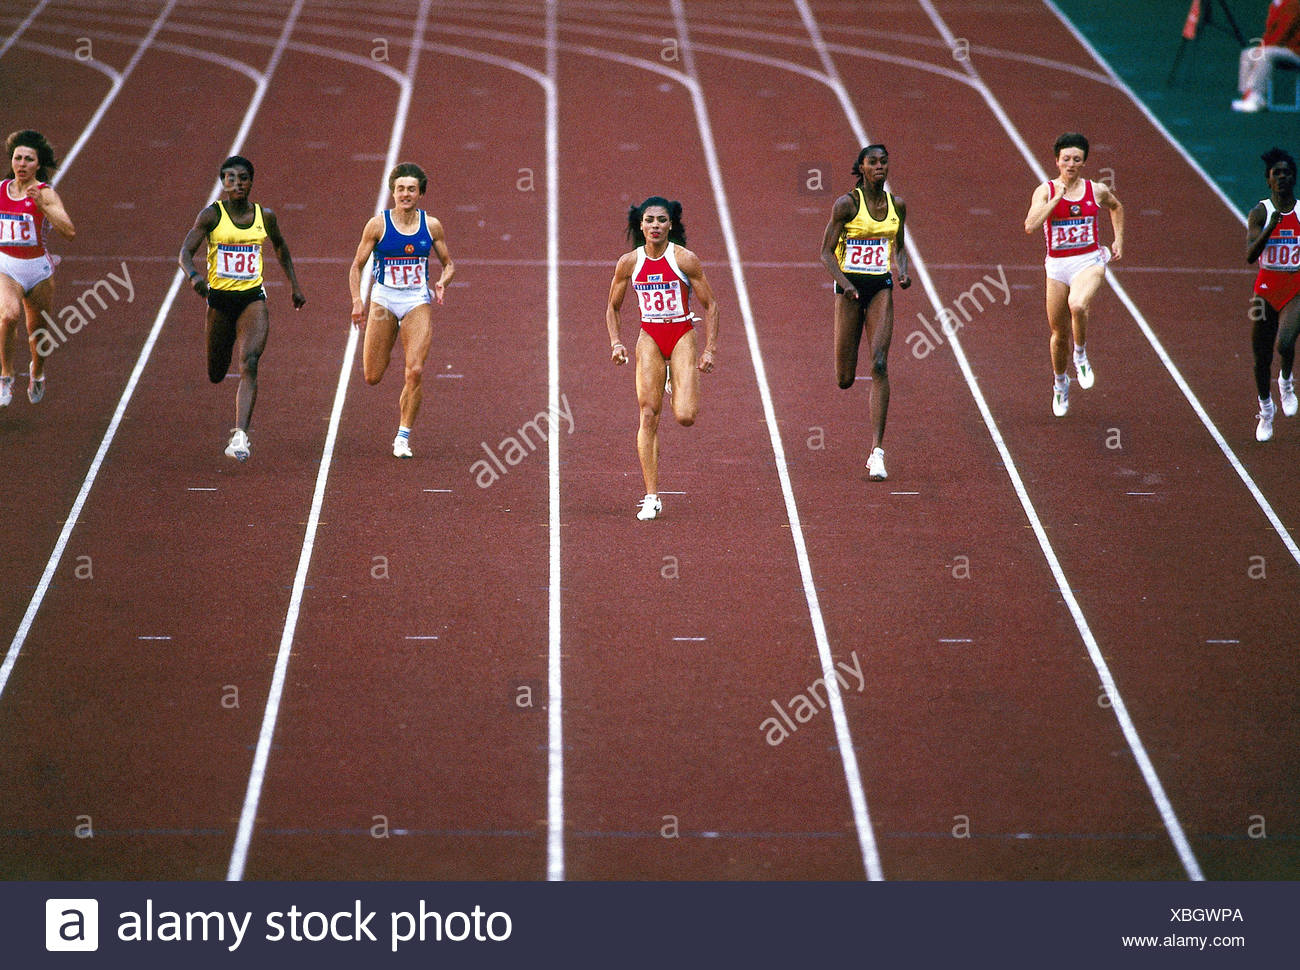 Griffith-Joyner, Florence, 21.12.1959 - 21.9.1998, American athlete (athletics), full length, Olympic Games, Seoul, 1988, Additional-Rights-Clearances-NA - Stock Image